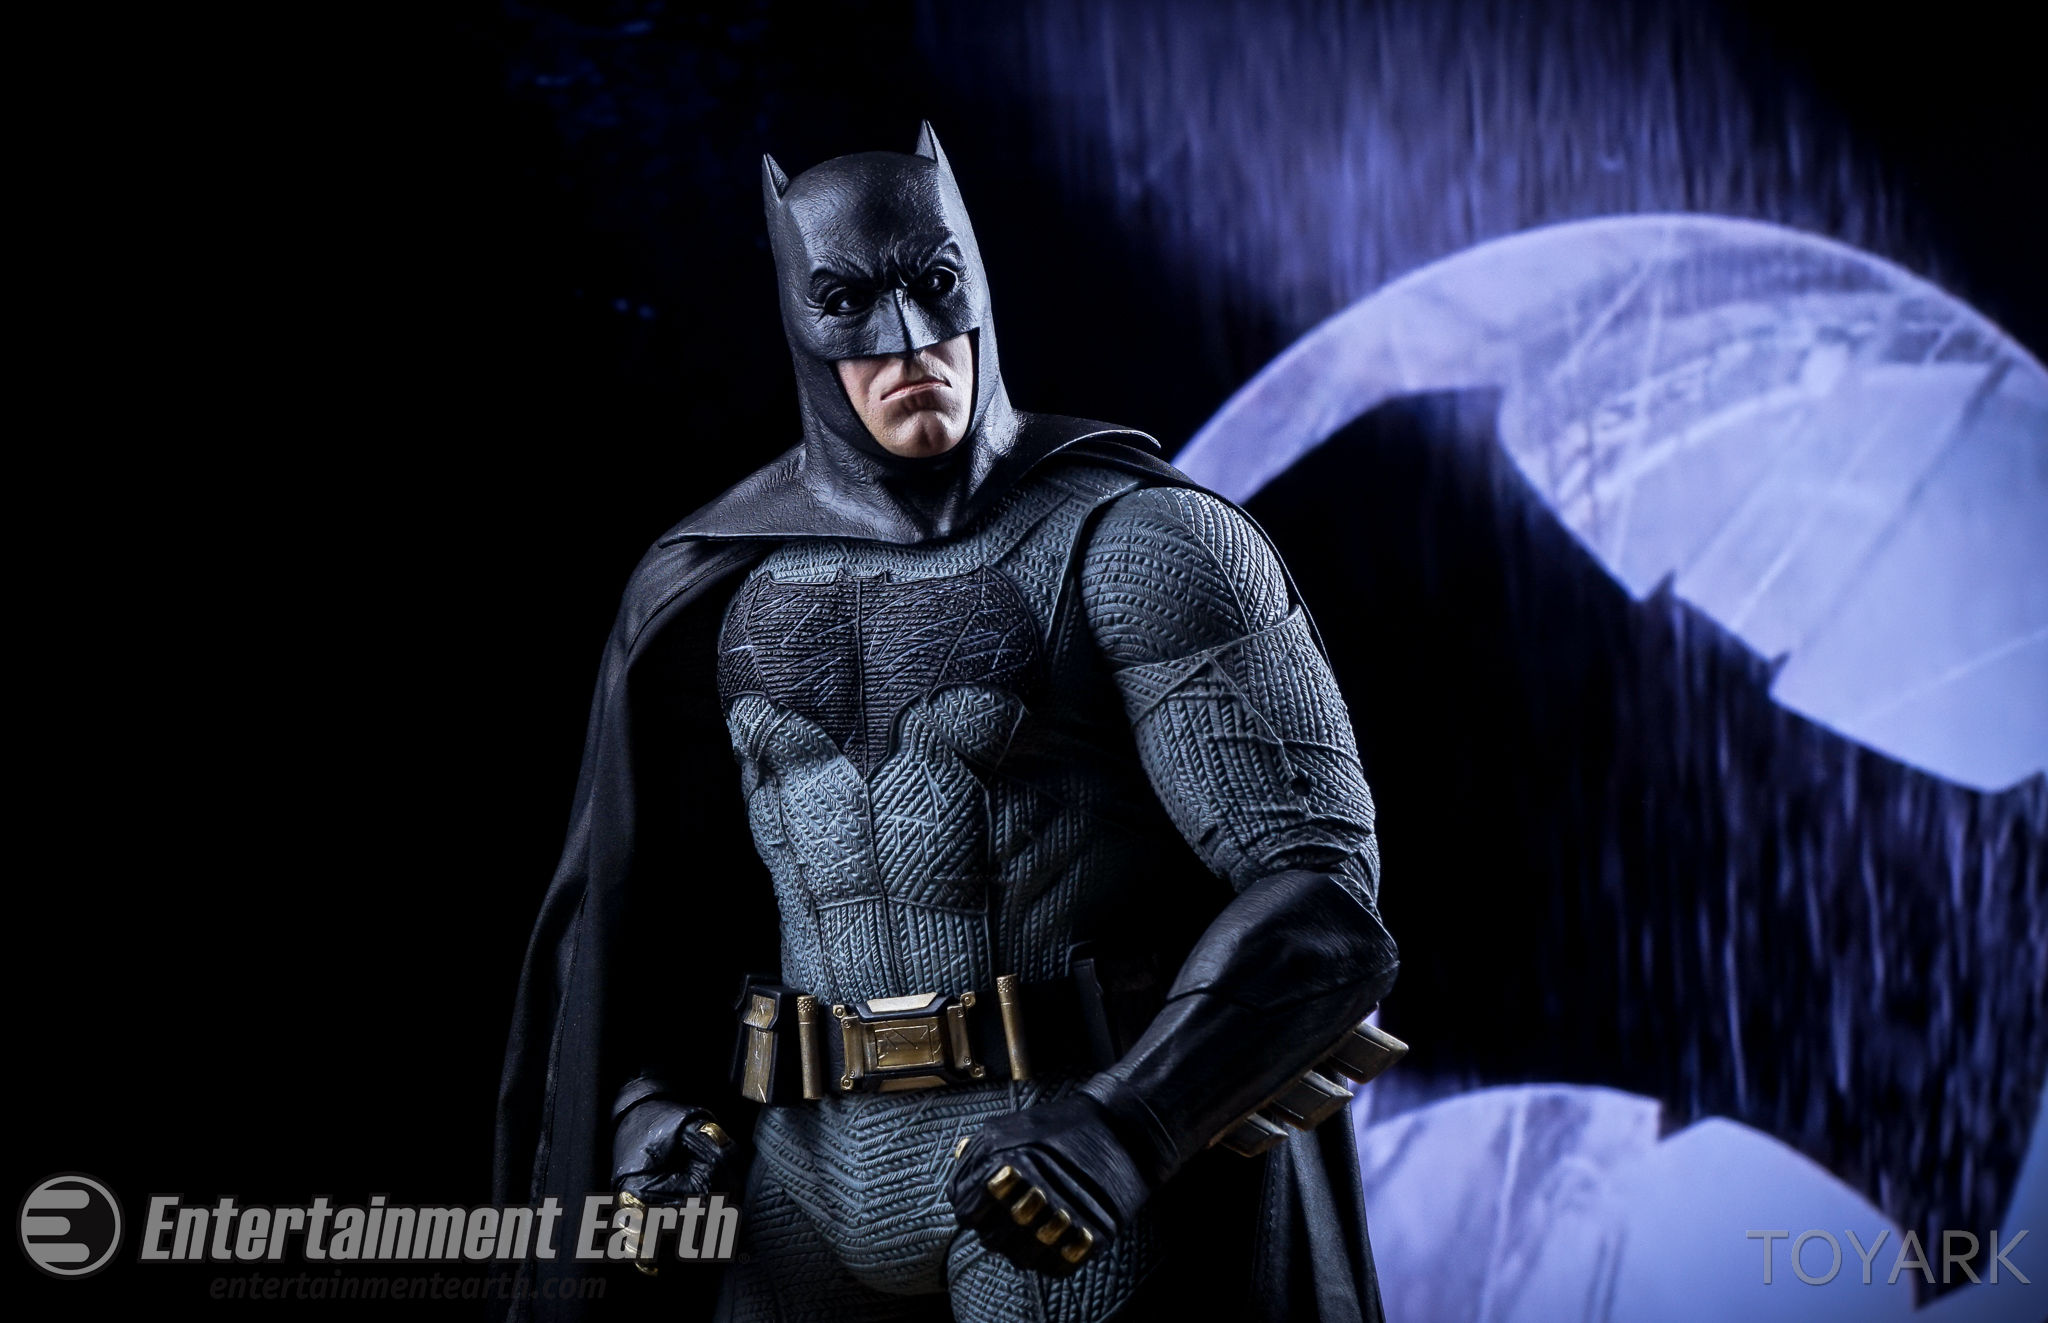 http://news.toyark.com/wp-content/uploads/sites/4/2016/06/NECA-BvS-Quarter-Scale-Batman-049.jpg